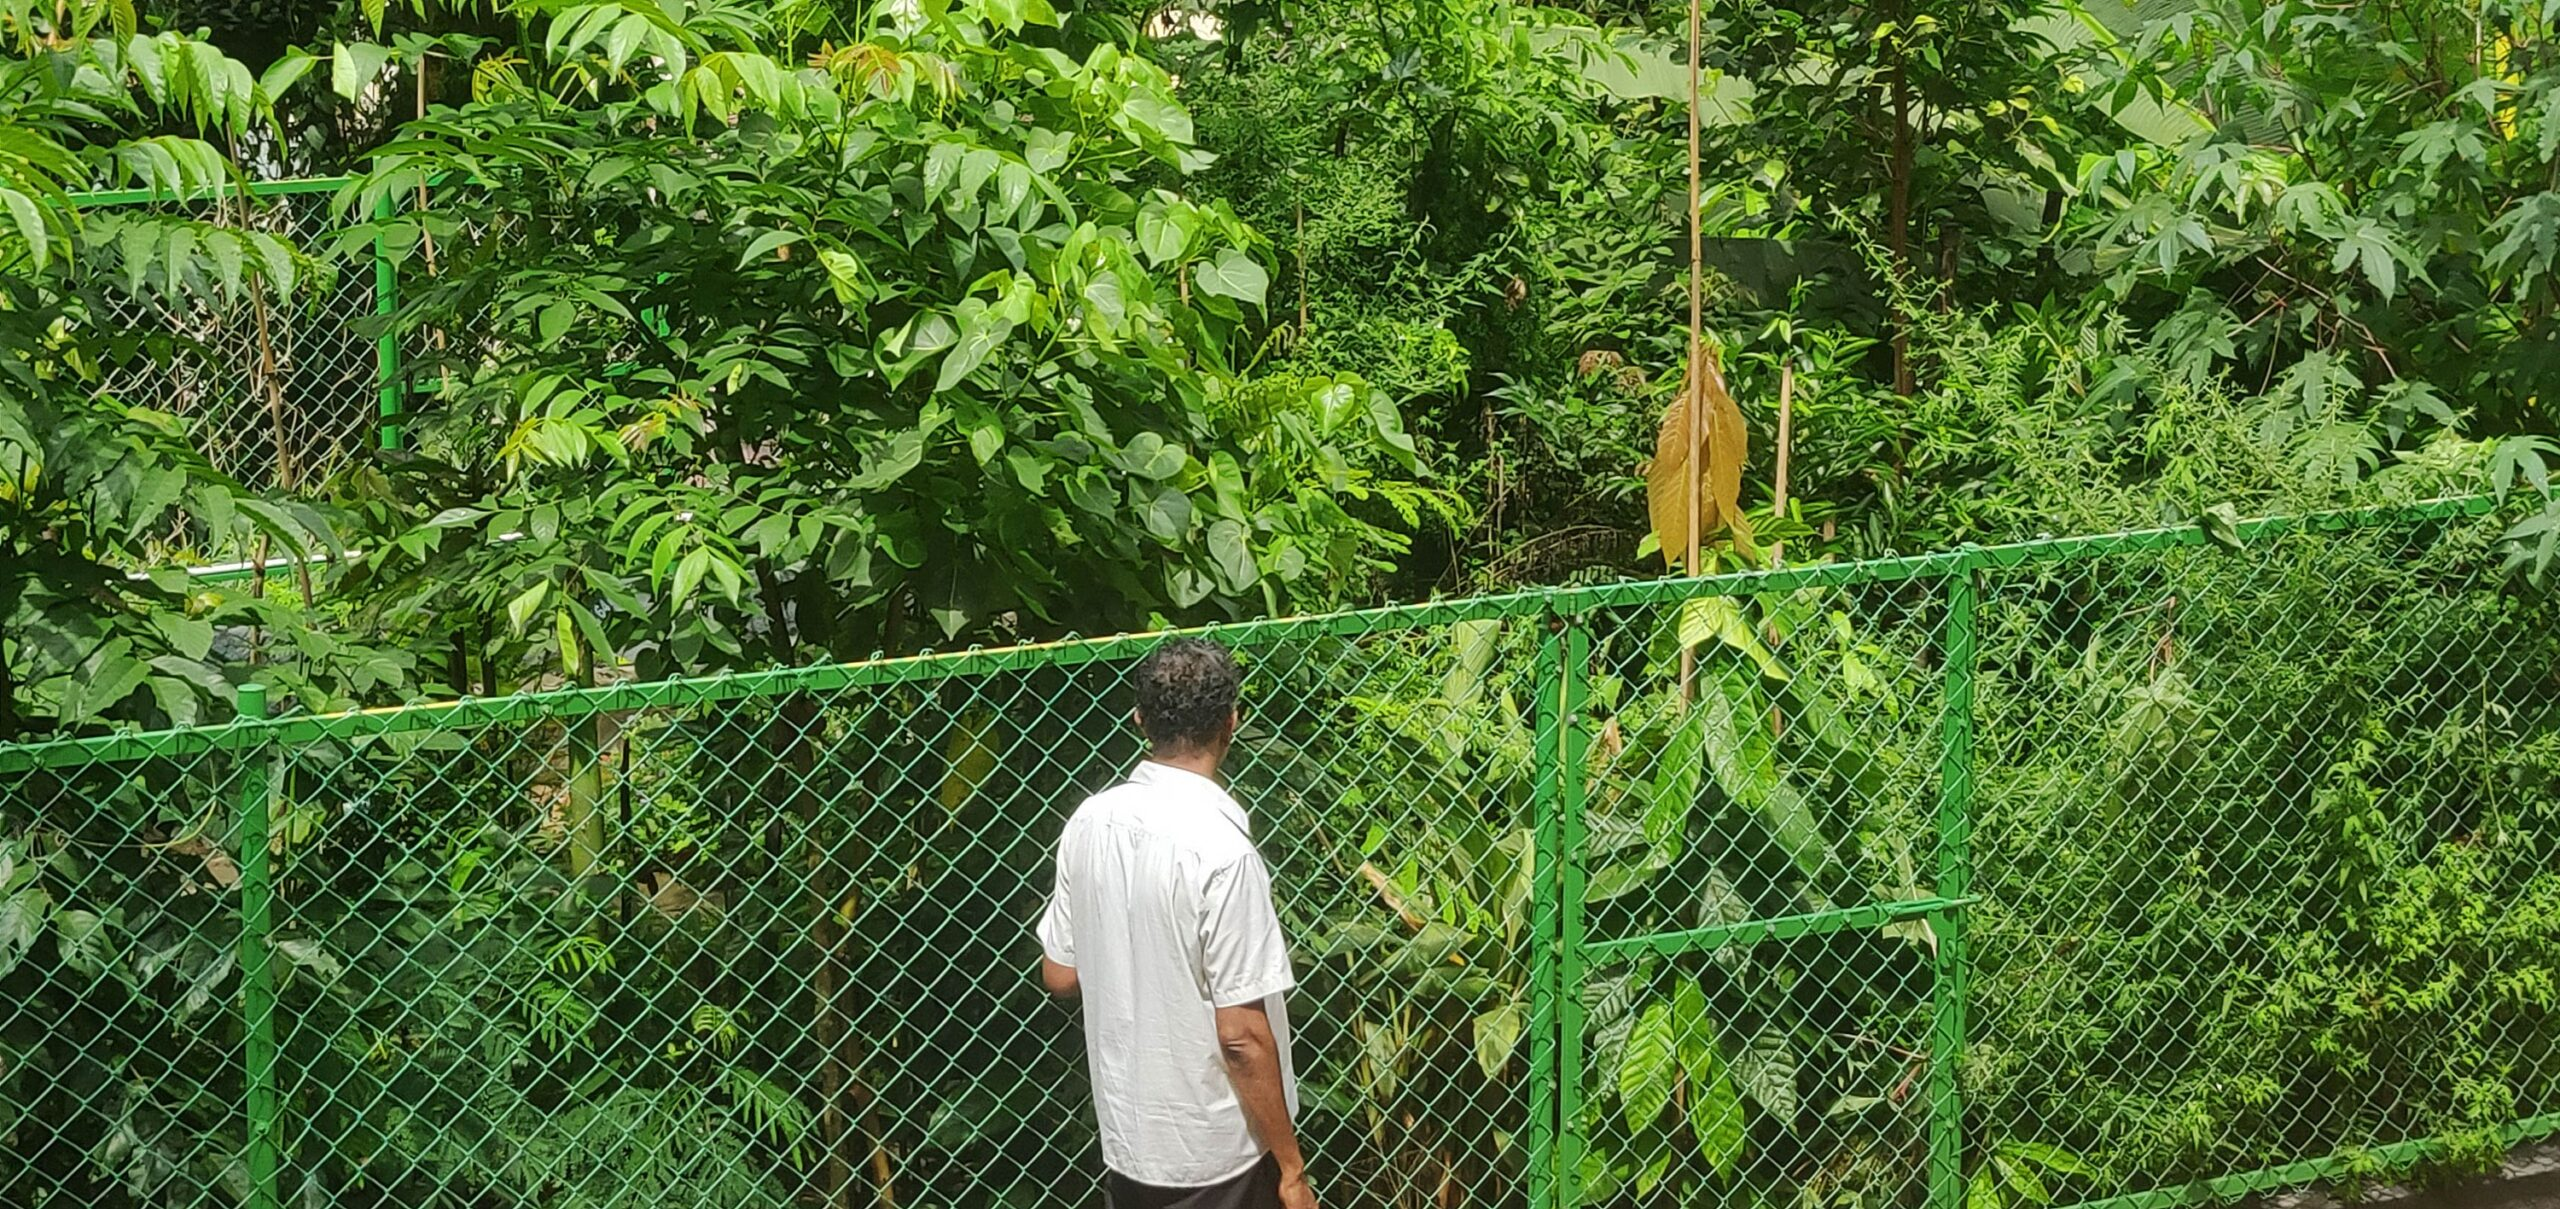 A lush green Miyawaki forest 9 onths after it was planted. A man in standing in front of it.